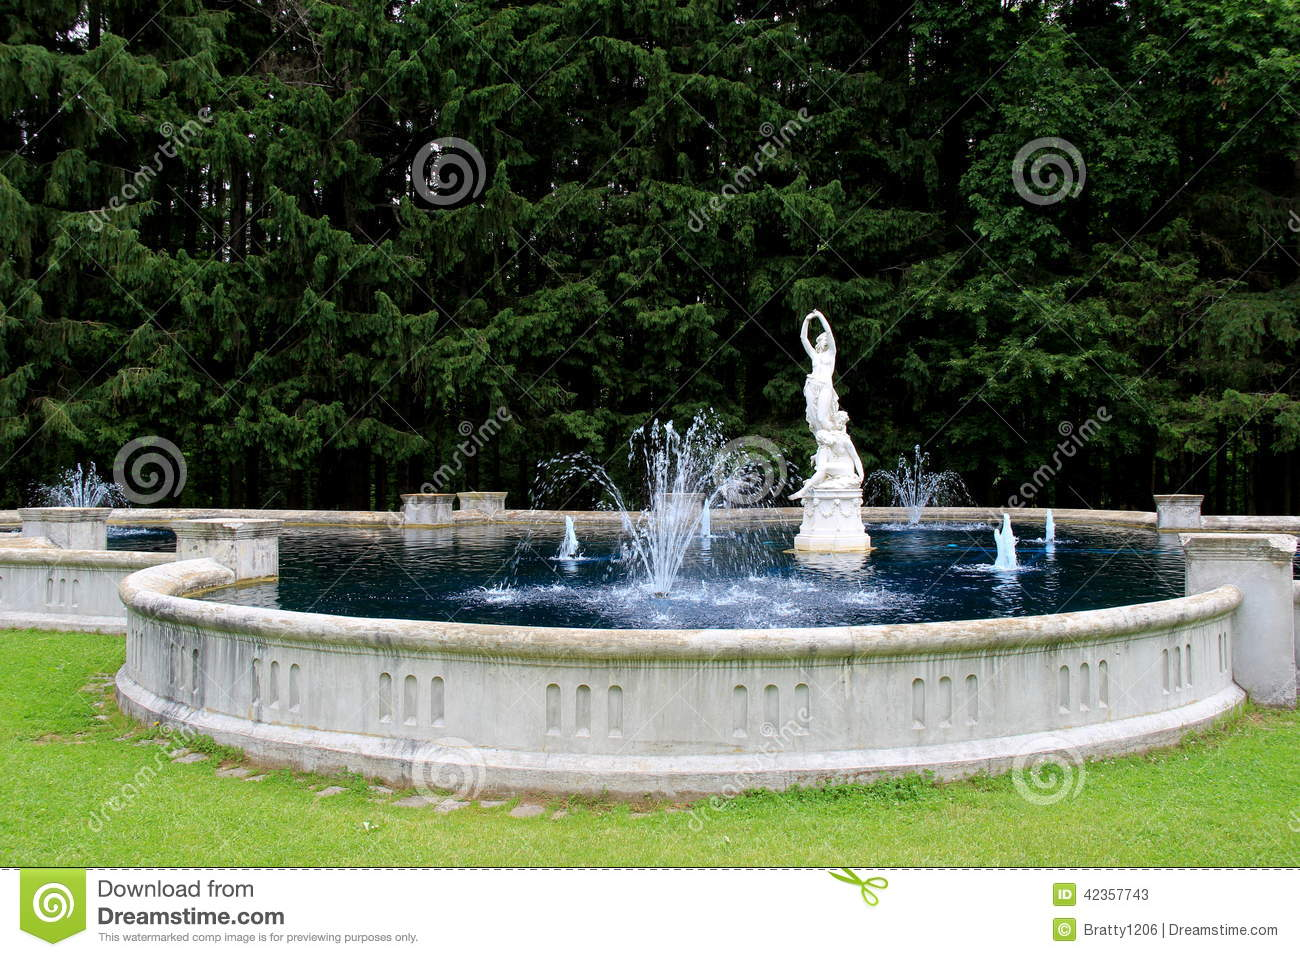 Water fountains with statues - Beautiful Water Fountain And Statues Yaddo Gardens Saratoga Springs New York 2014